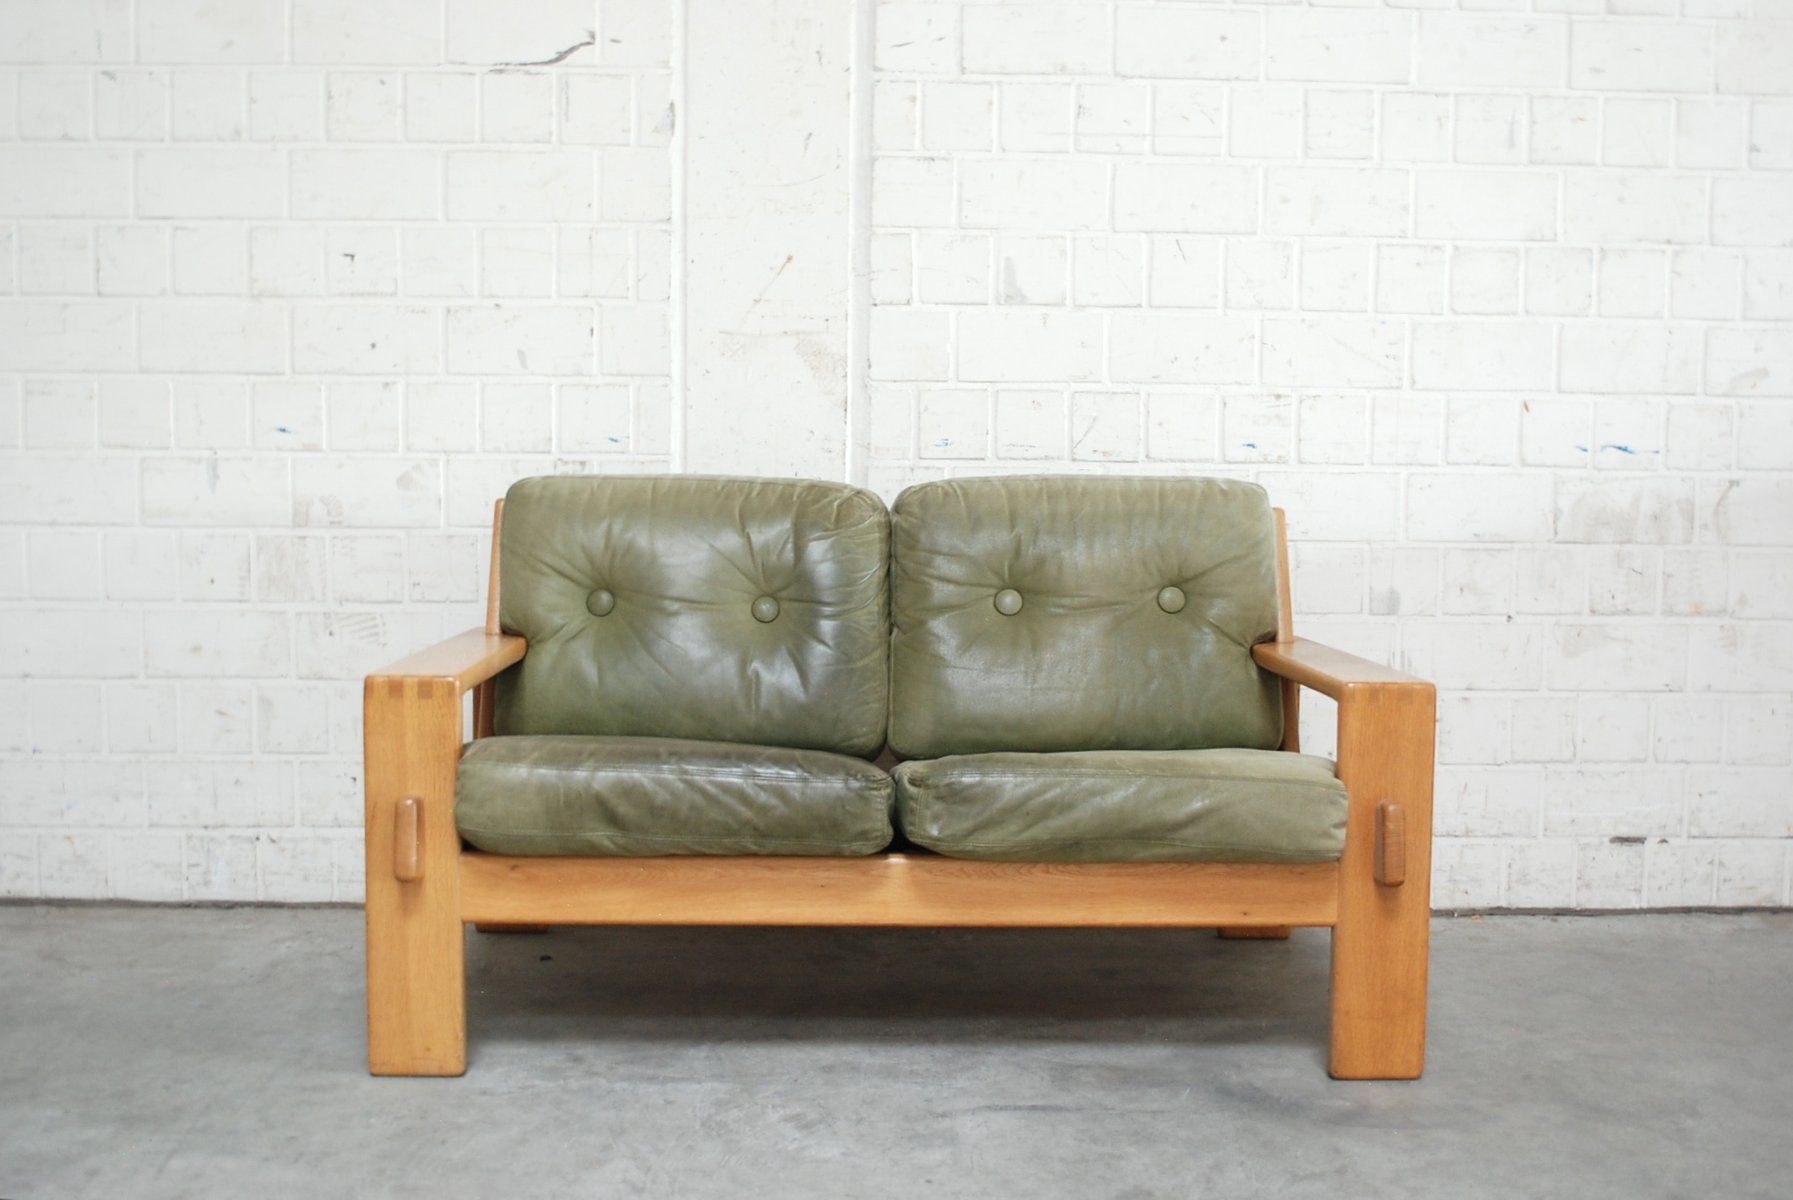 Vintage Bonanza Green Leather Sofa By Esko Pajamies For Asko For Sale At Pamono